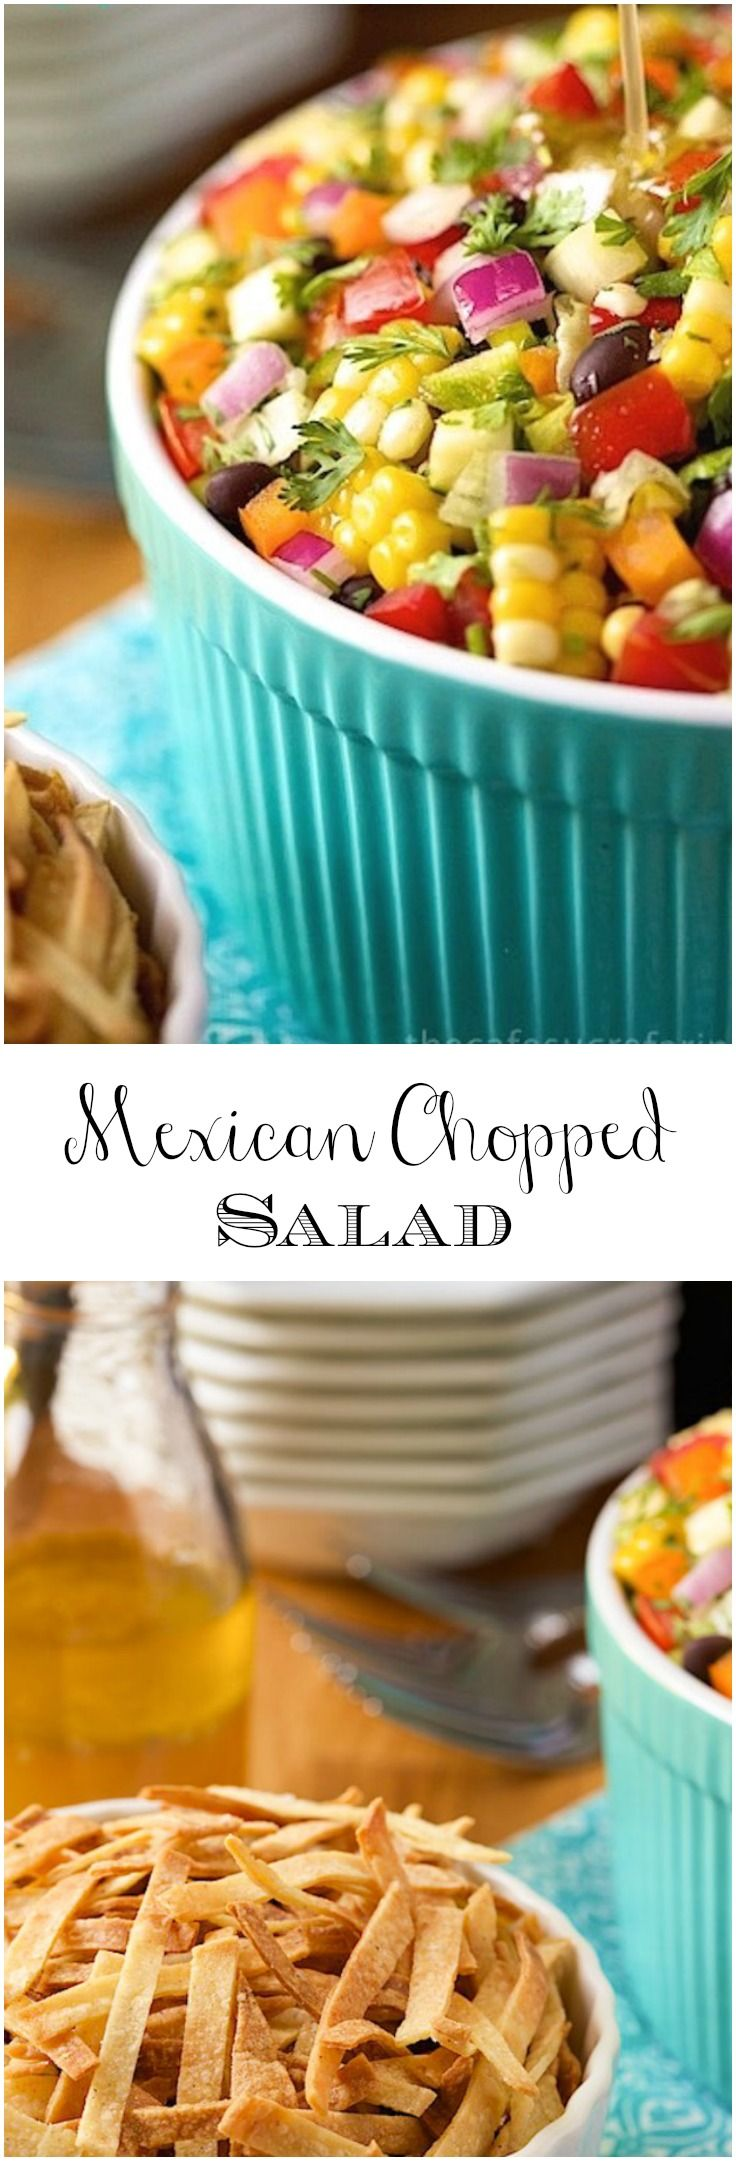 Mexican Chopped Salad | The freshest, healthiest, most summery salad with lots of Southwestern flair! via @cafesucrefarine